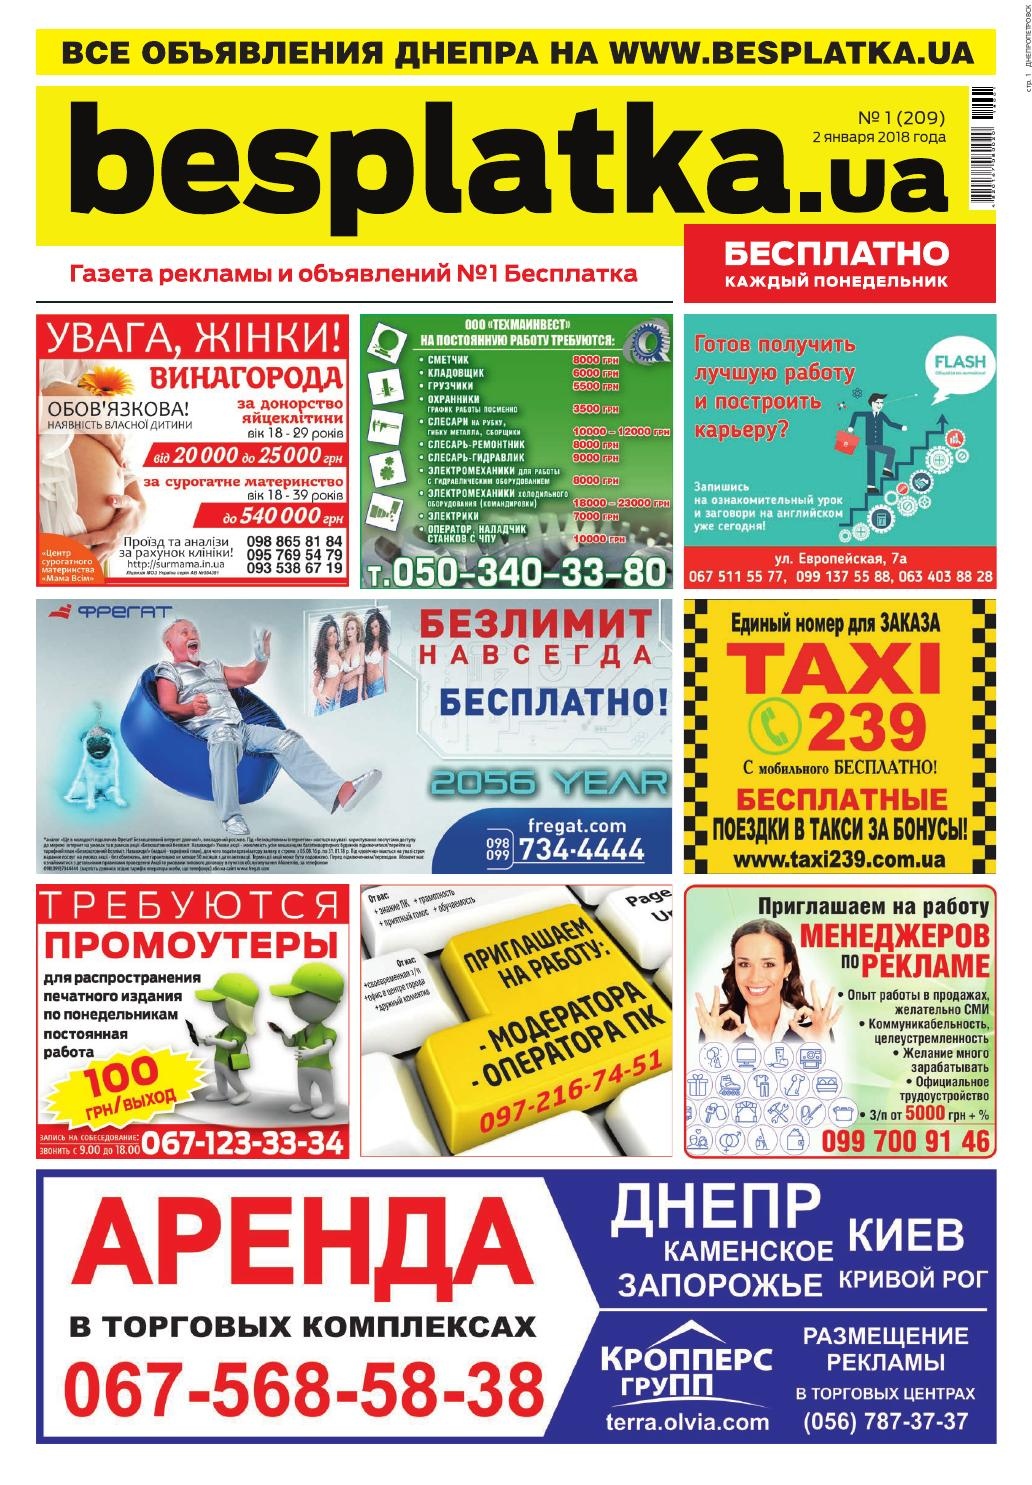 86c6994c304f Besplatka #1 Днепр by besplatka ukraine - issuu